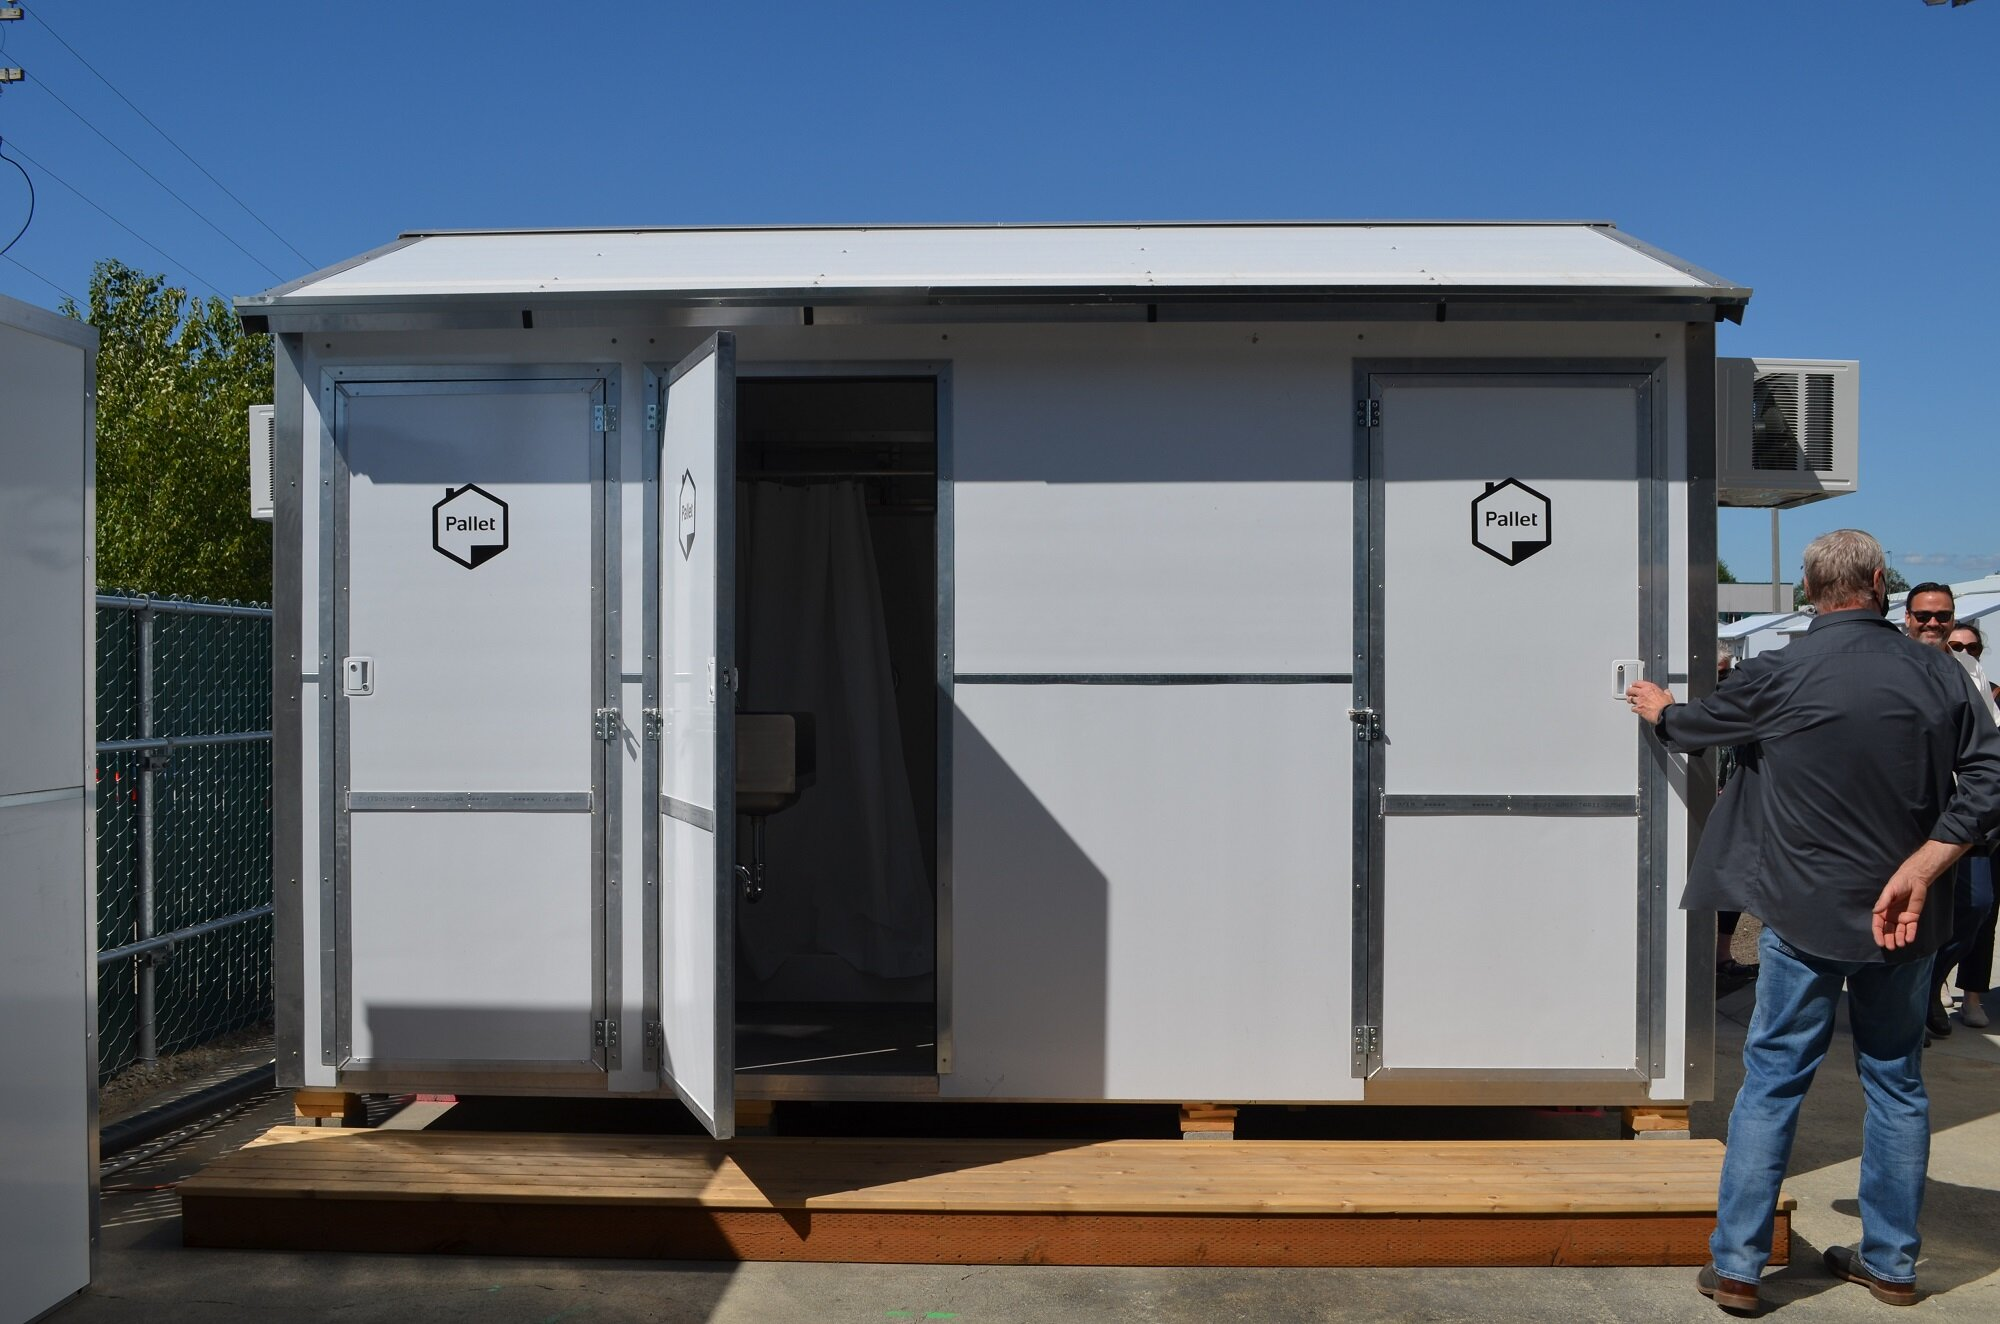 The site is also using our pilot communal bathroom and showers.